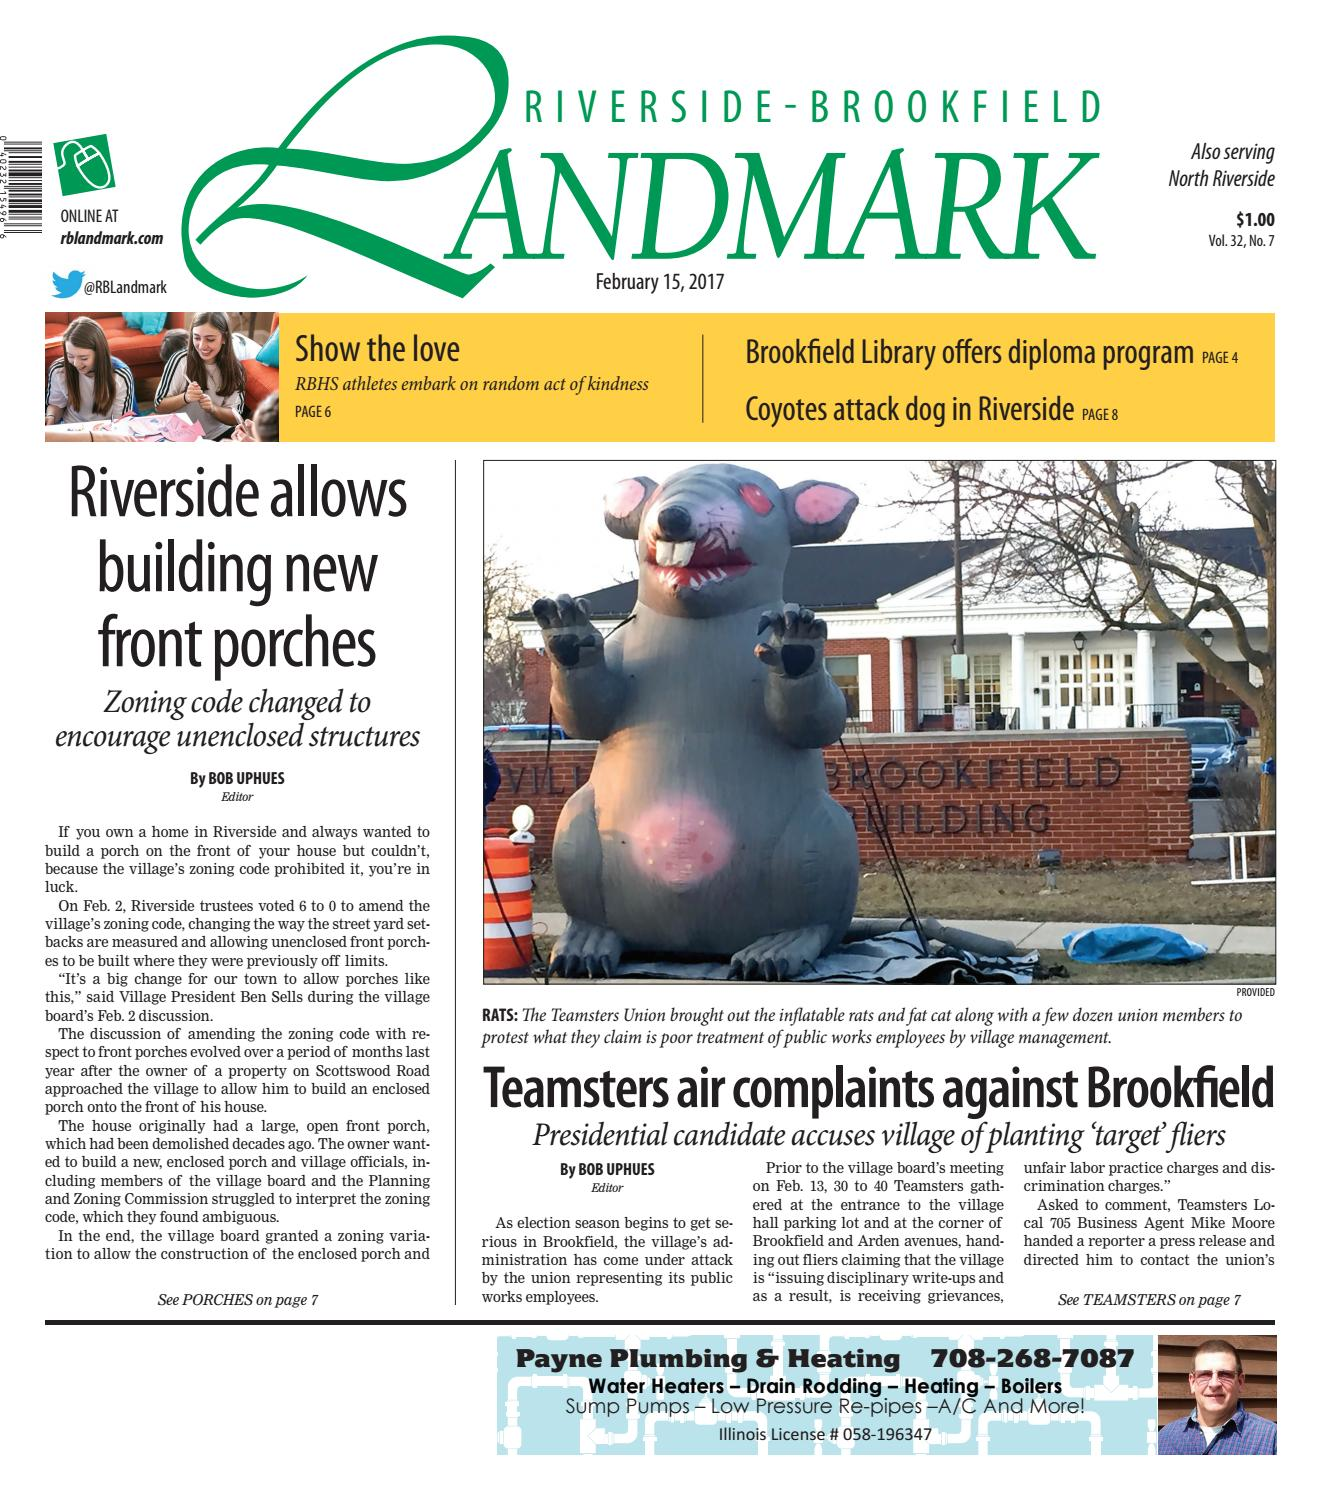 Landmark_021517 by Wednesday Journal - issuu